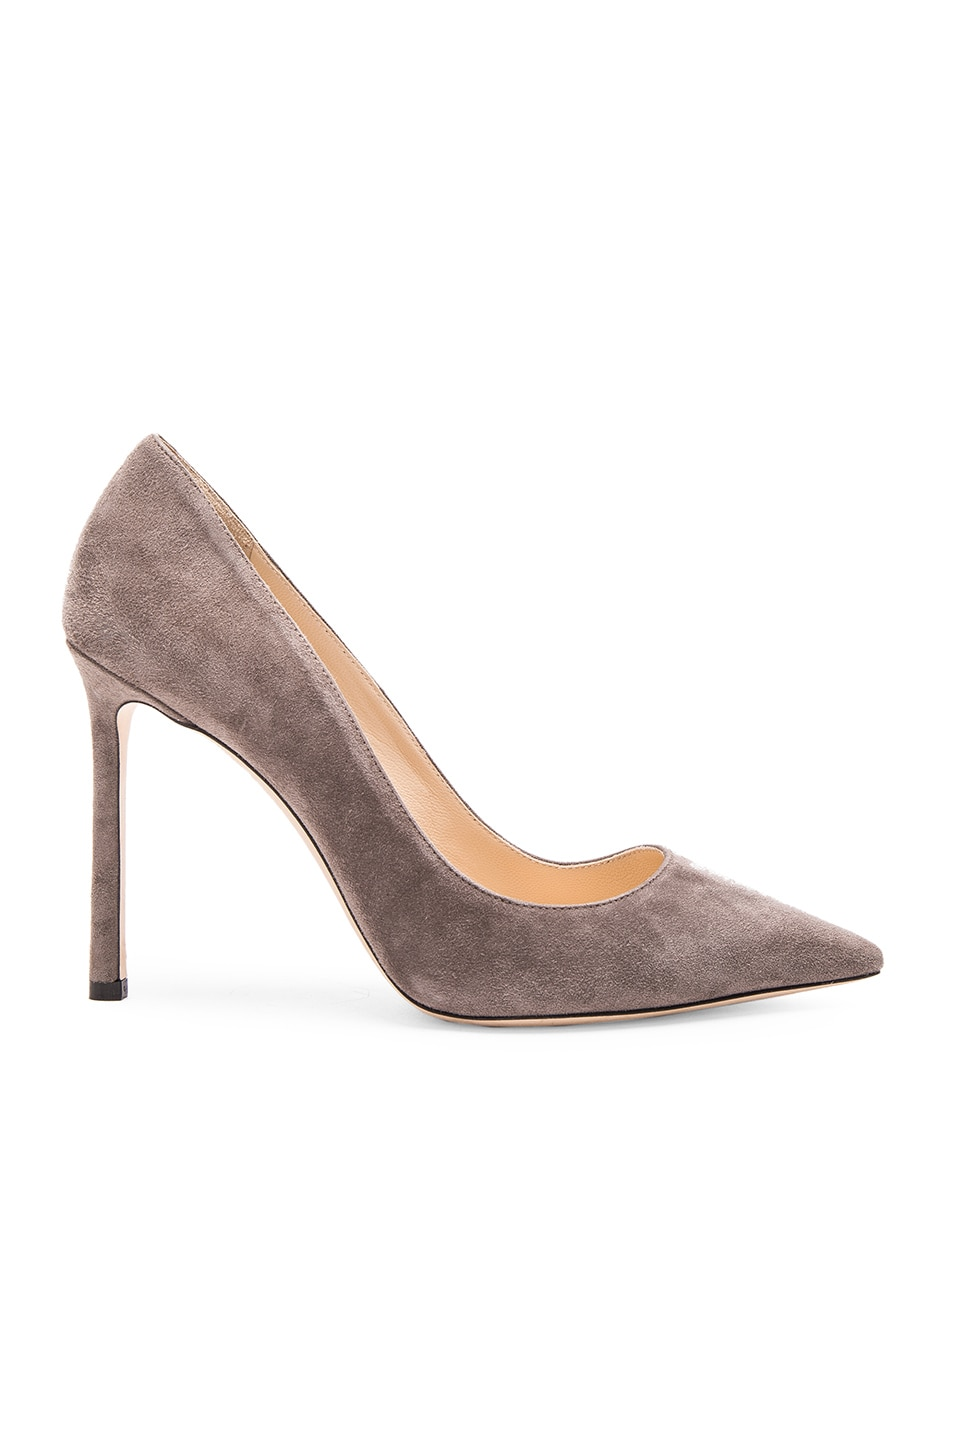 Image 1 of Jimmy Choo Suede Romy Pumps in Taupe Grey